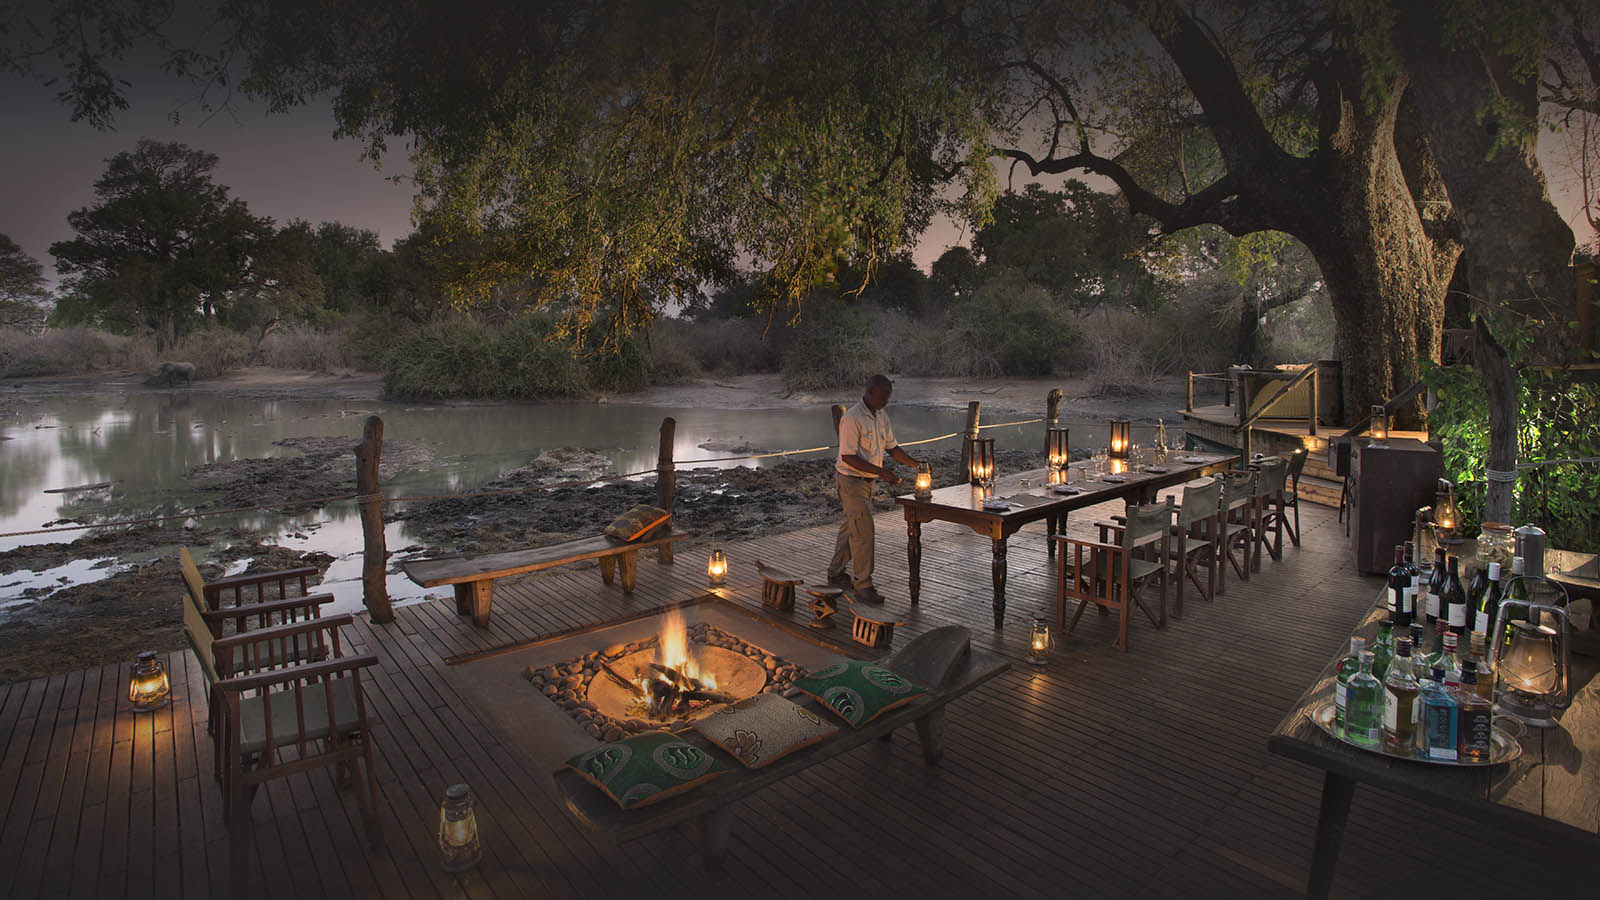 kanga bush camp mana-pools-national-park-lodges-zimbabwe-accommodation-african-bush-camps-staff-member